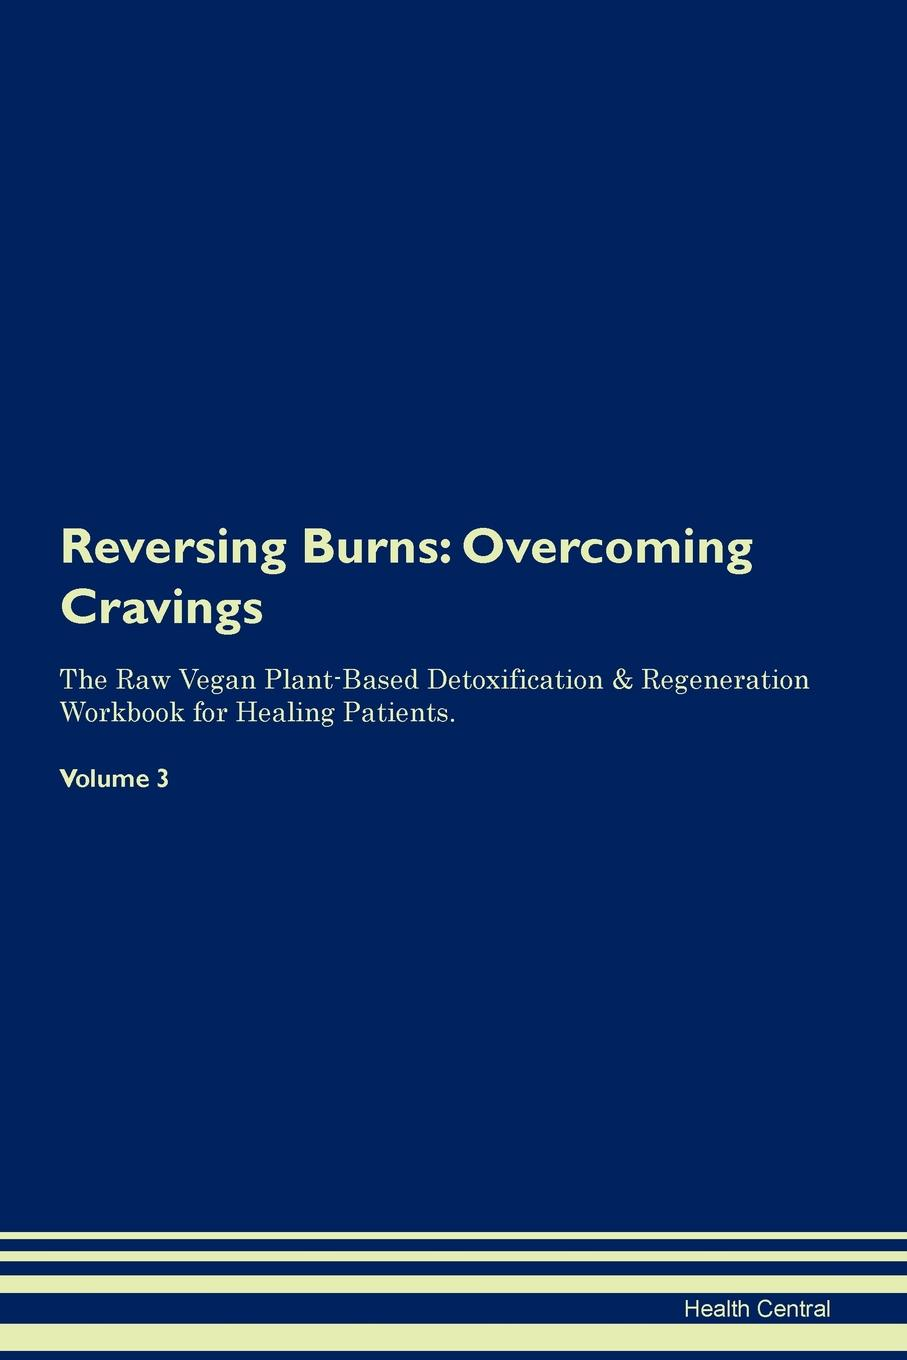 Health Central Reversing Burns. Overcoming Cravings The Raw Vegan Plant-Based Detoxification & Regeneration Workbook for Healing Patients. Volume 3 george burns w happiness healing enhancement your casebook collection for applying positive psychology in therapy